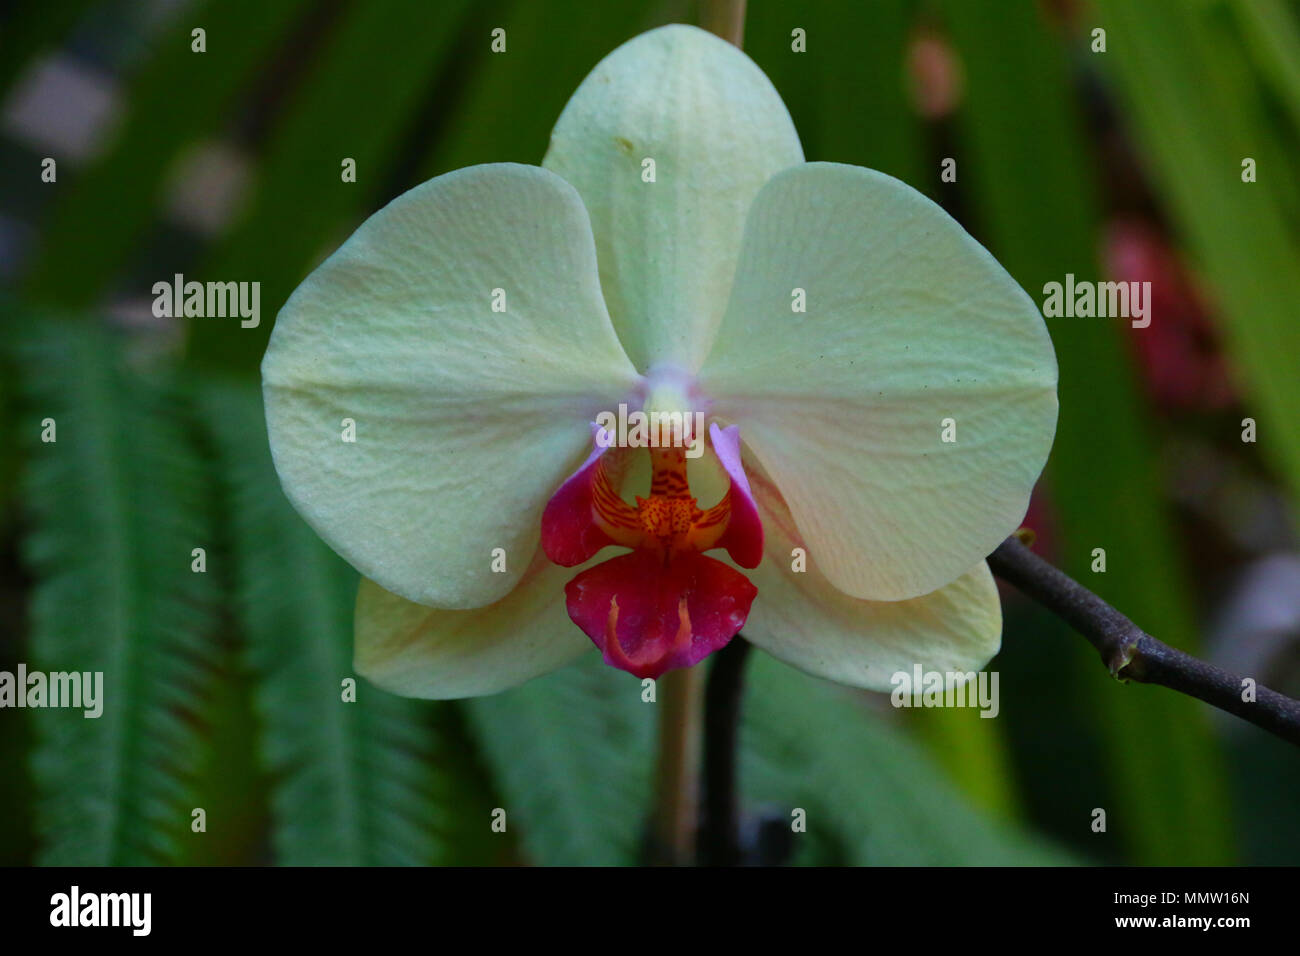 Beautiful orchid with white coloured leaves in a botanic garden. - Stock Image